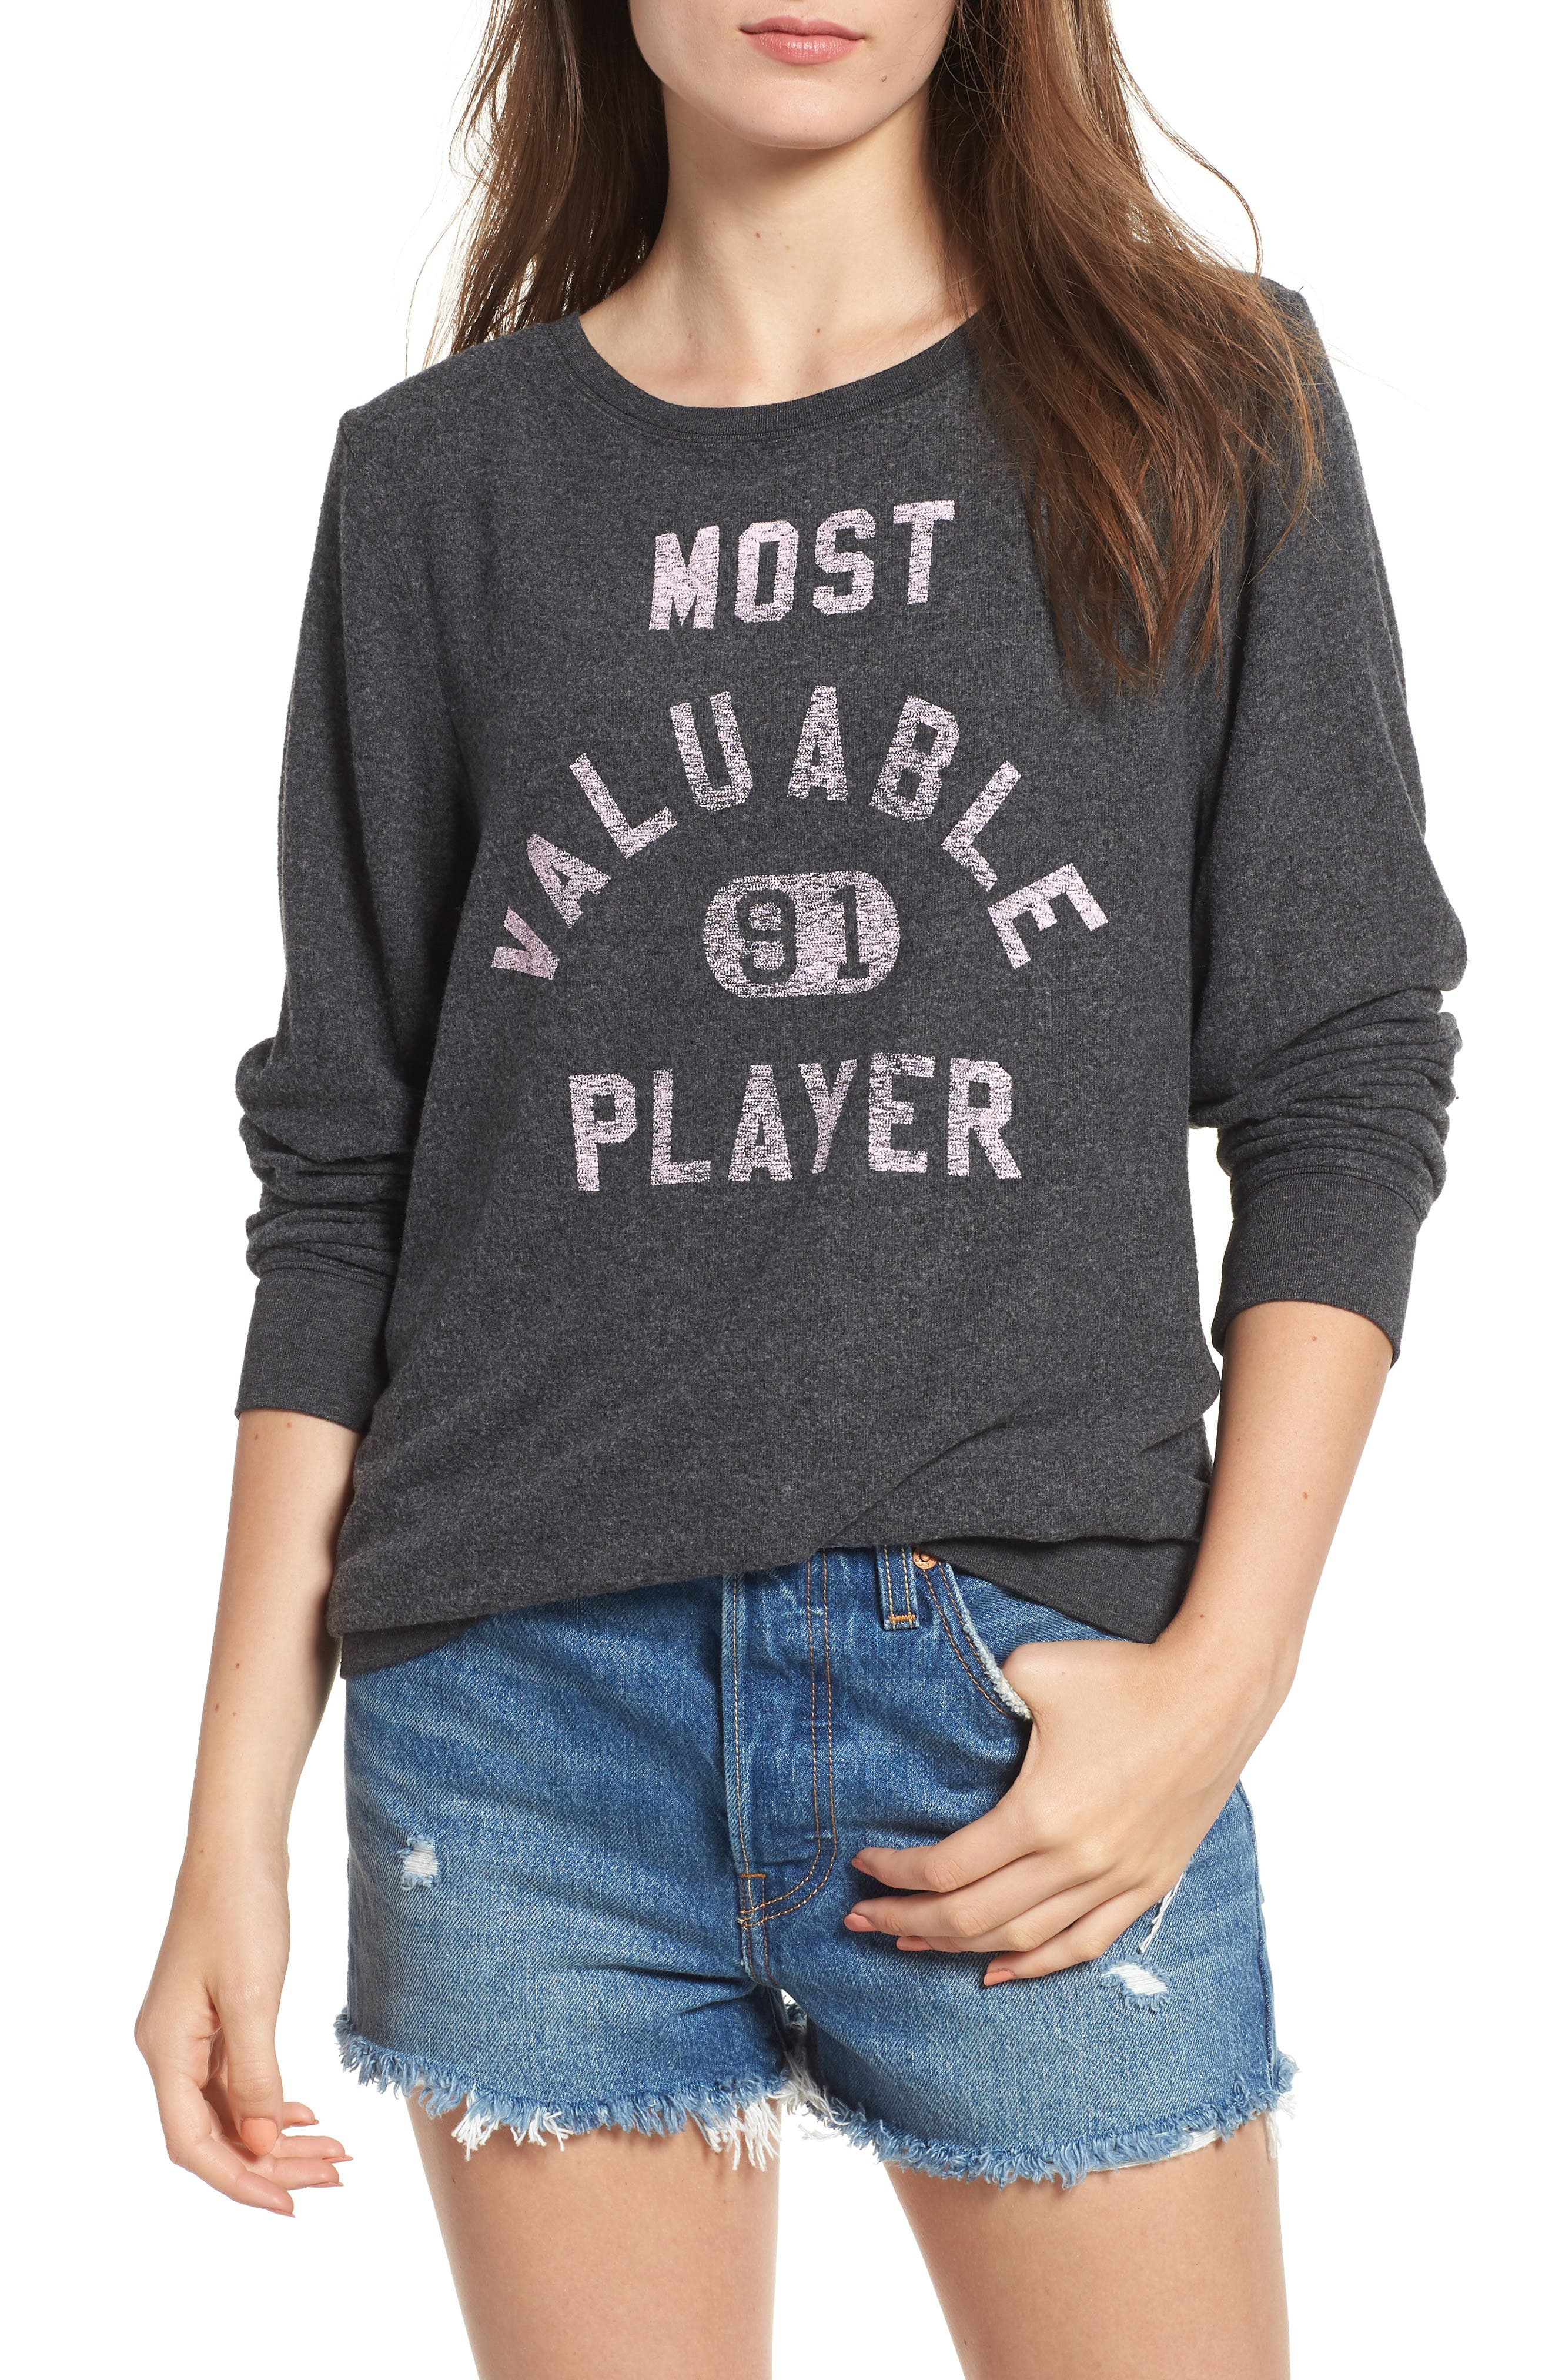 Most Valuable Player Baggy Beach Jumper Sweatshirt,                             Main thumbnail 1, color,                             002